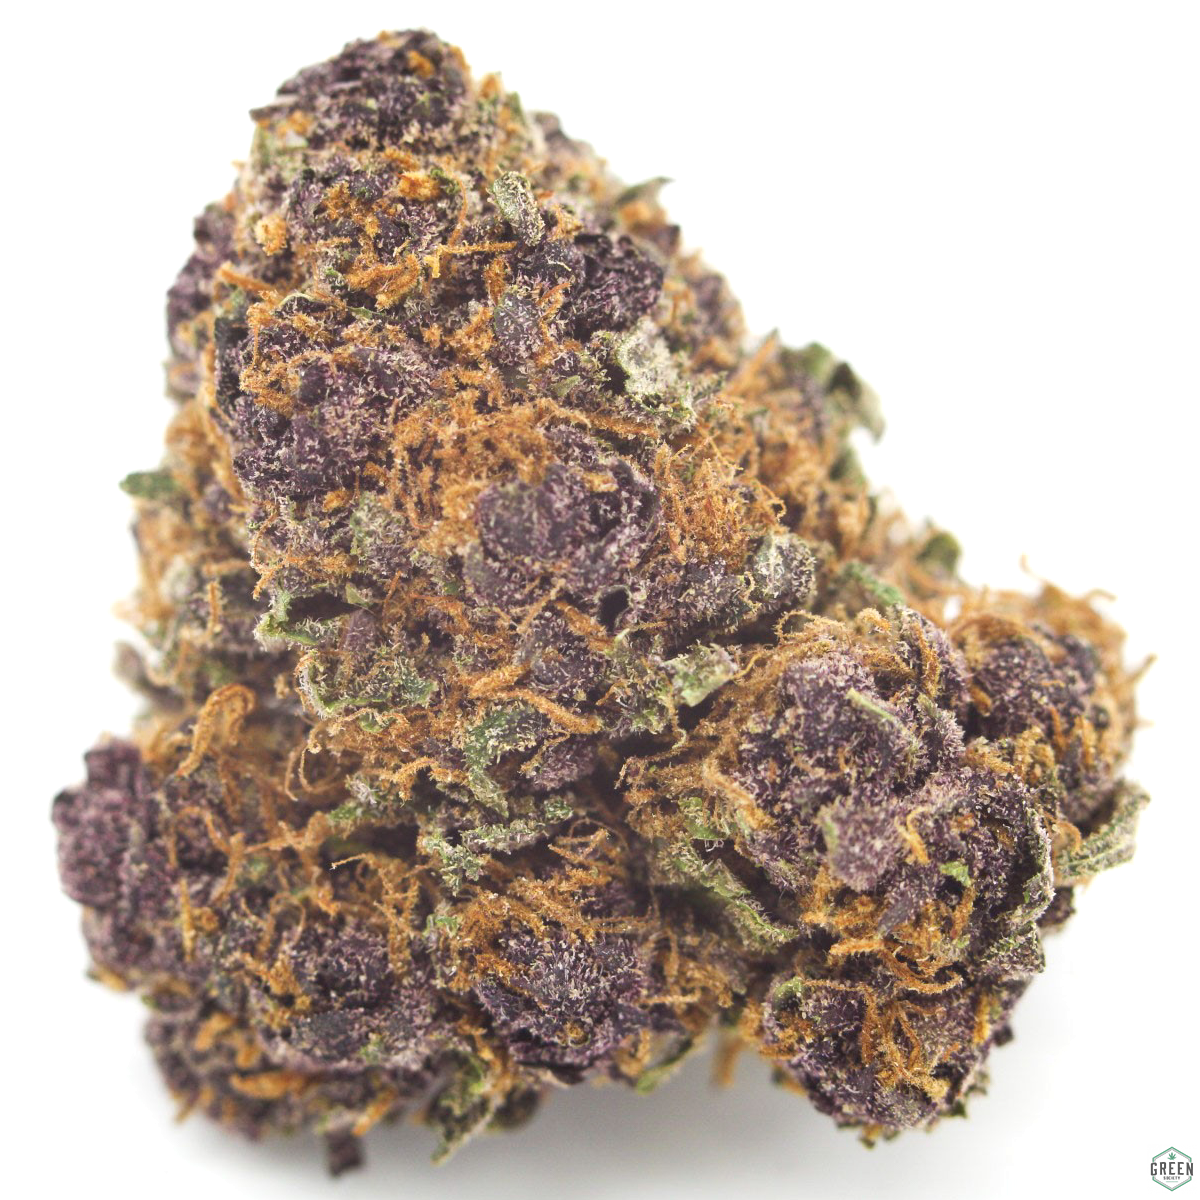 Grizzly Purple Kush by Green Society - Image © 2018 Green Society. All Rights Reserved.